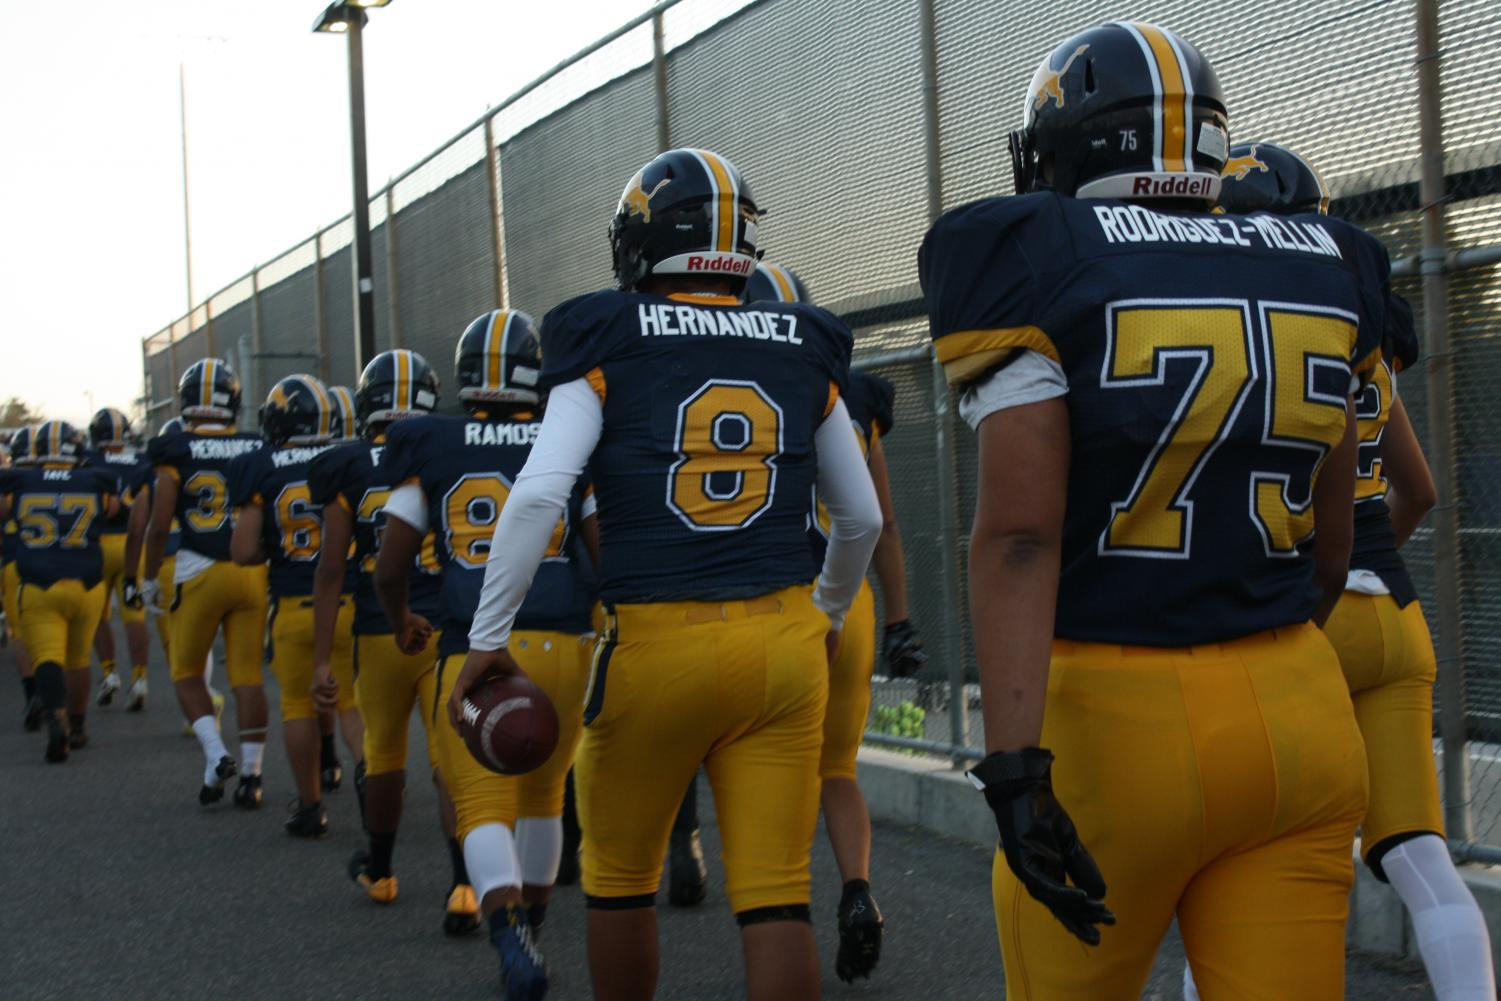 Markus Hernandez #8 walking out with the team. On Friday October 12th the Lions went against the Santa Teresa Saints. Lions won final score 19-13. (Anastasia Cervantes / Lincoln Lion Tales)